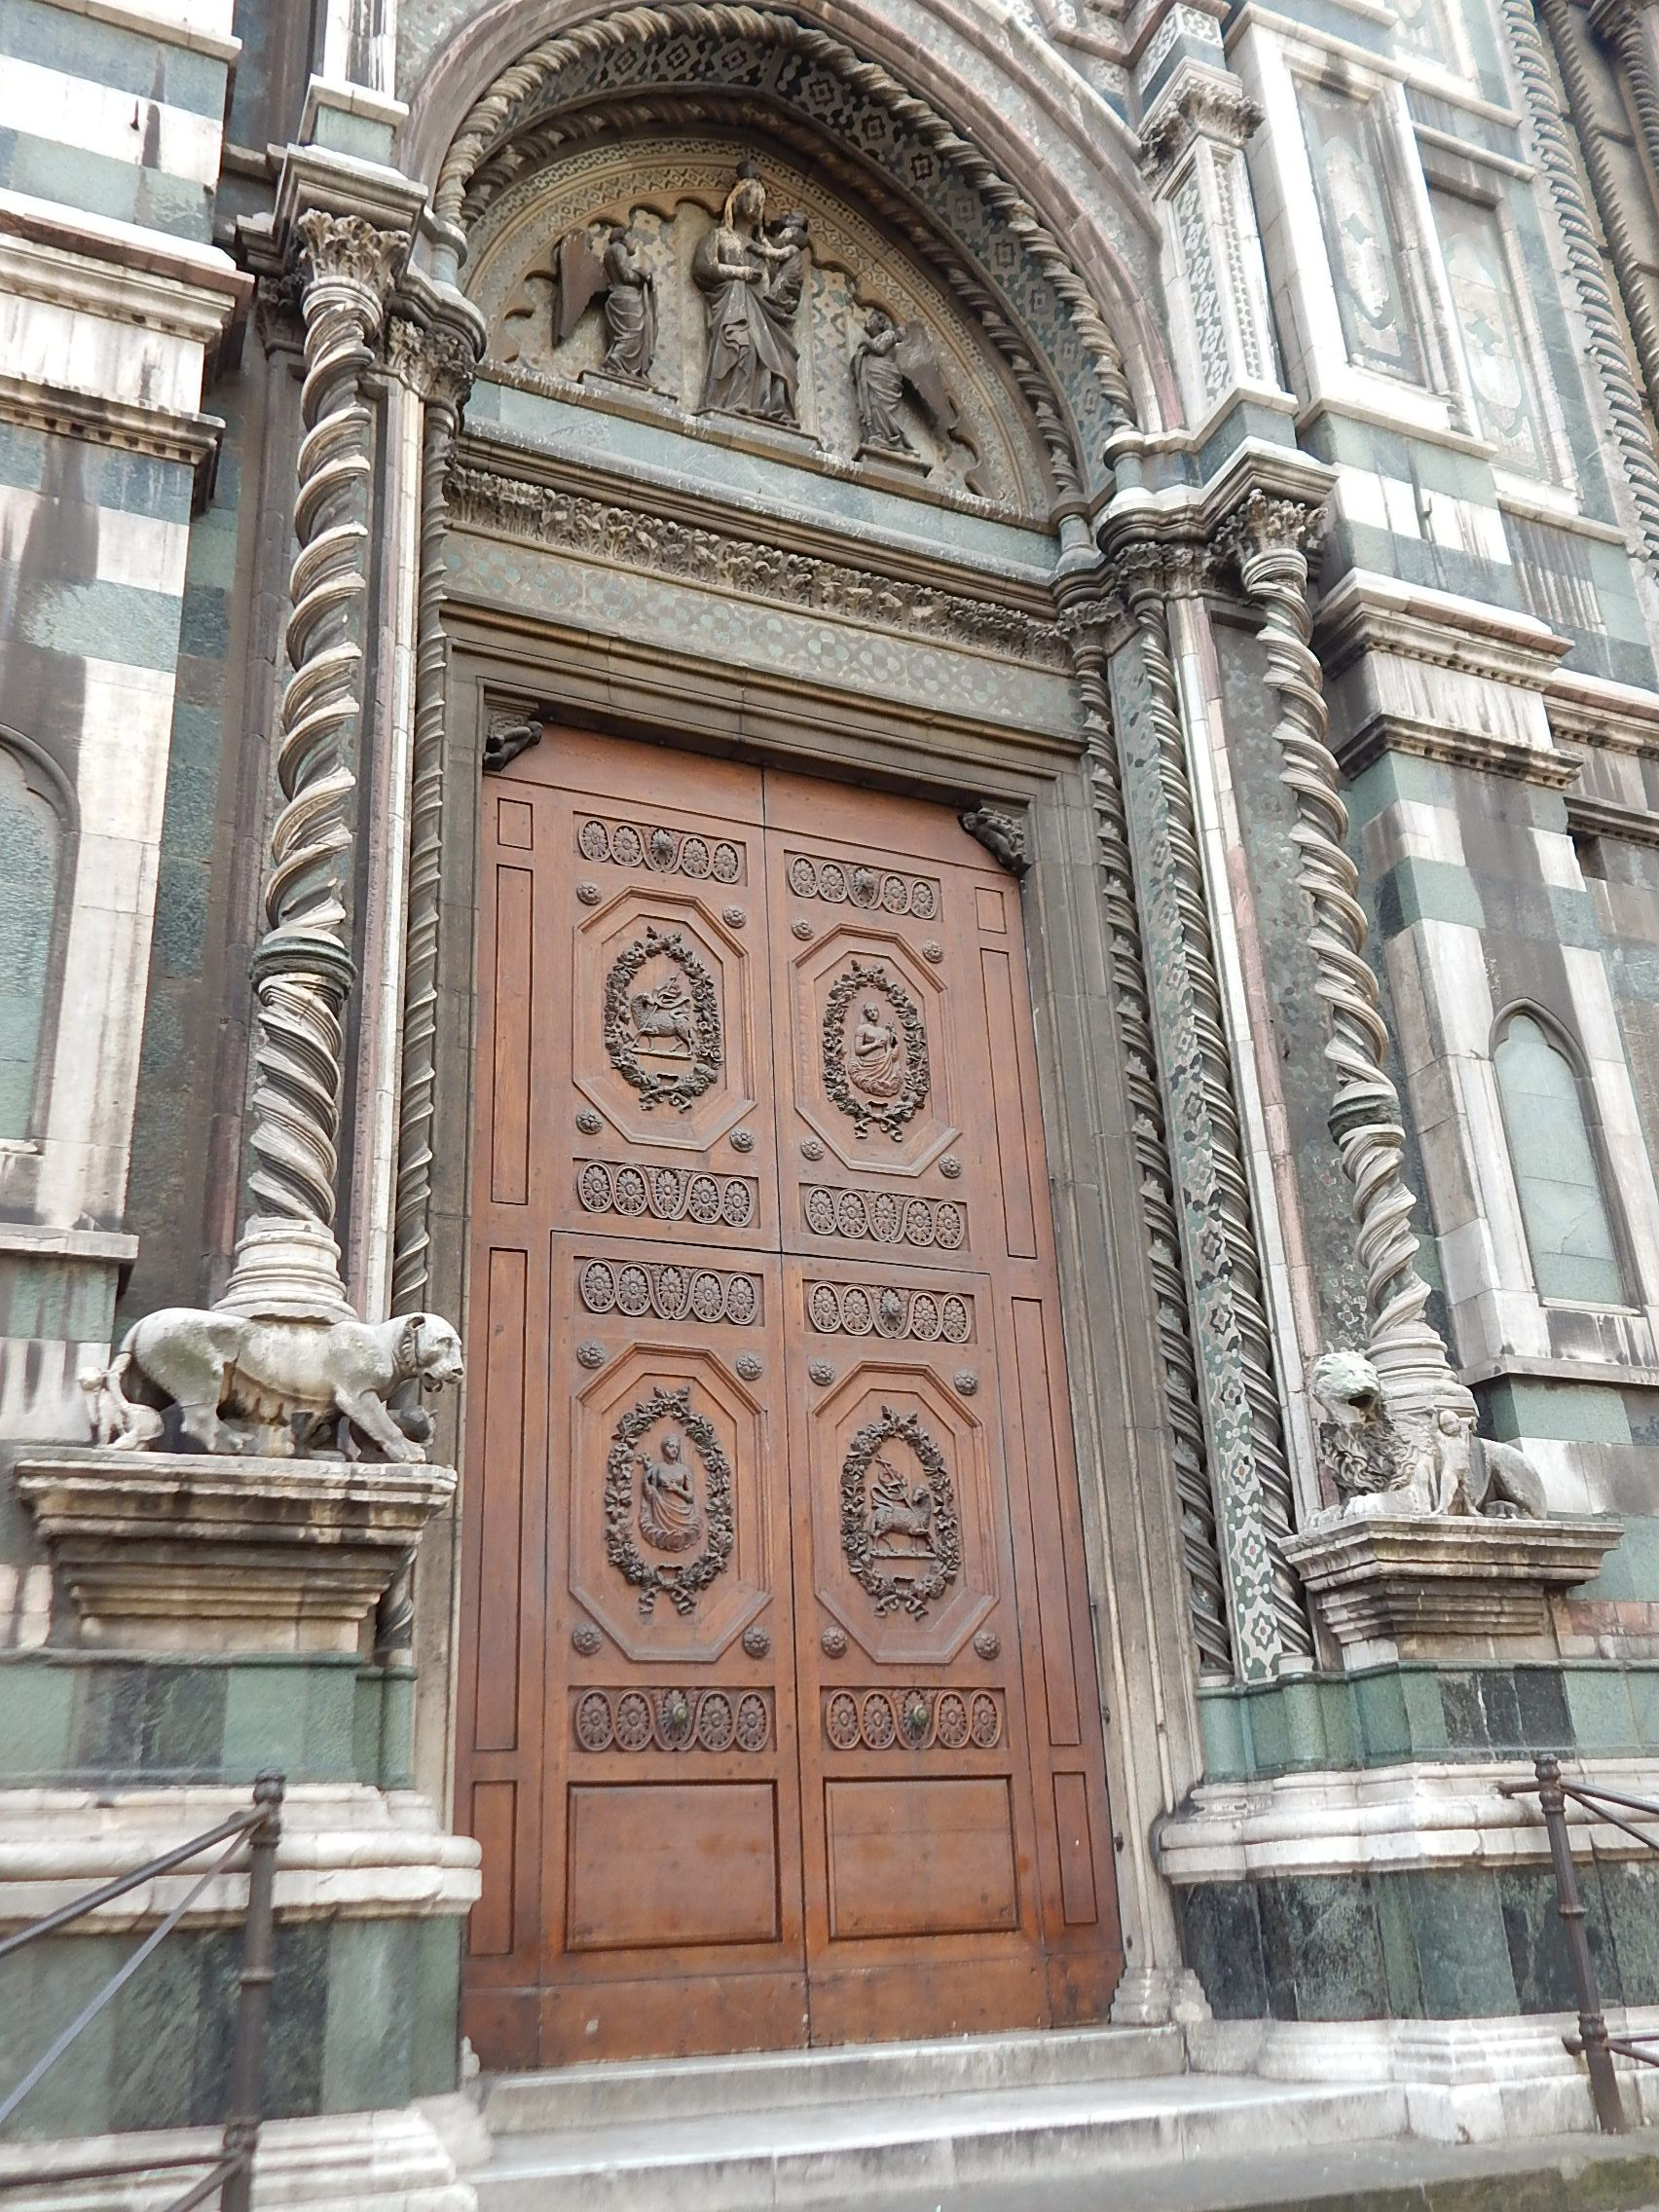 Finely detailed decorations sets off this cathedral doorway in #Florence